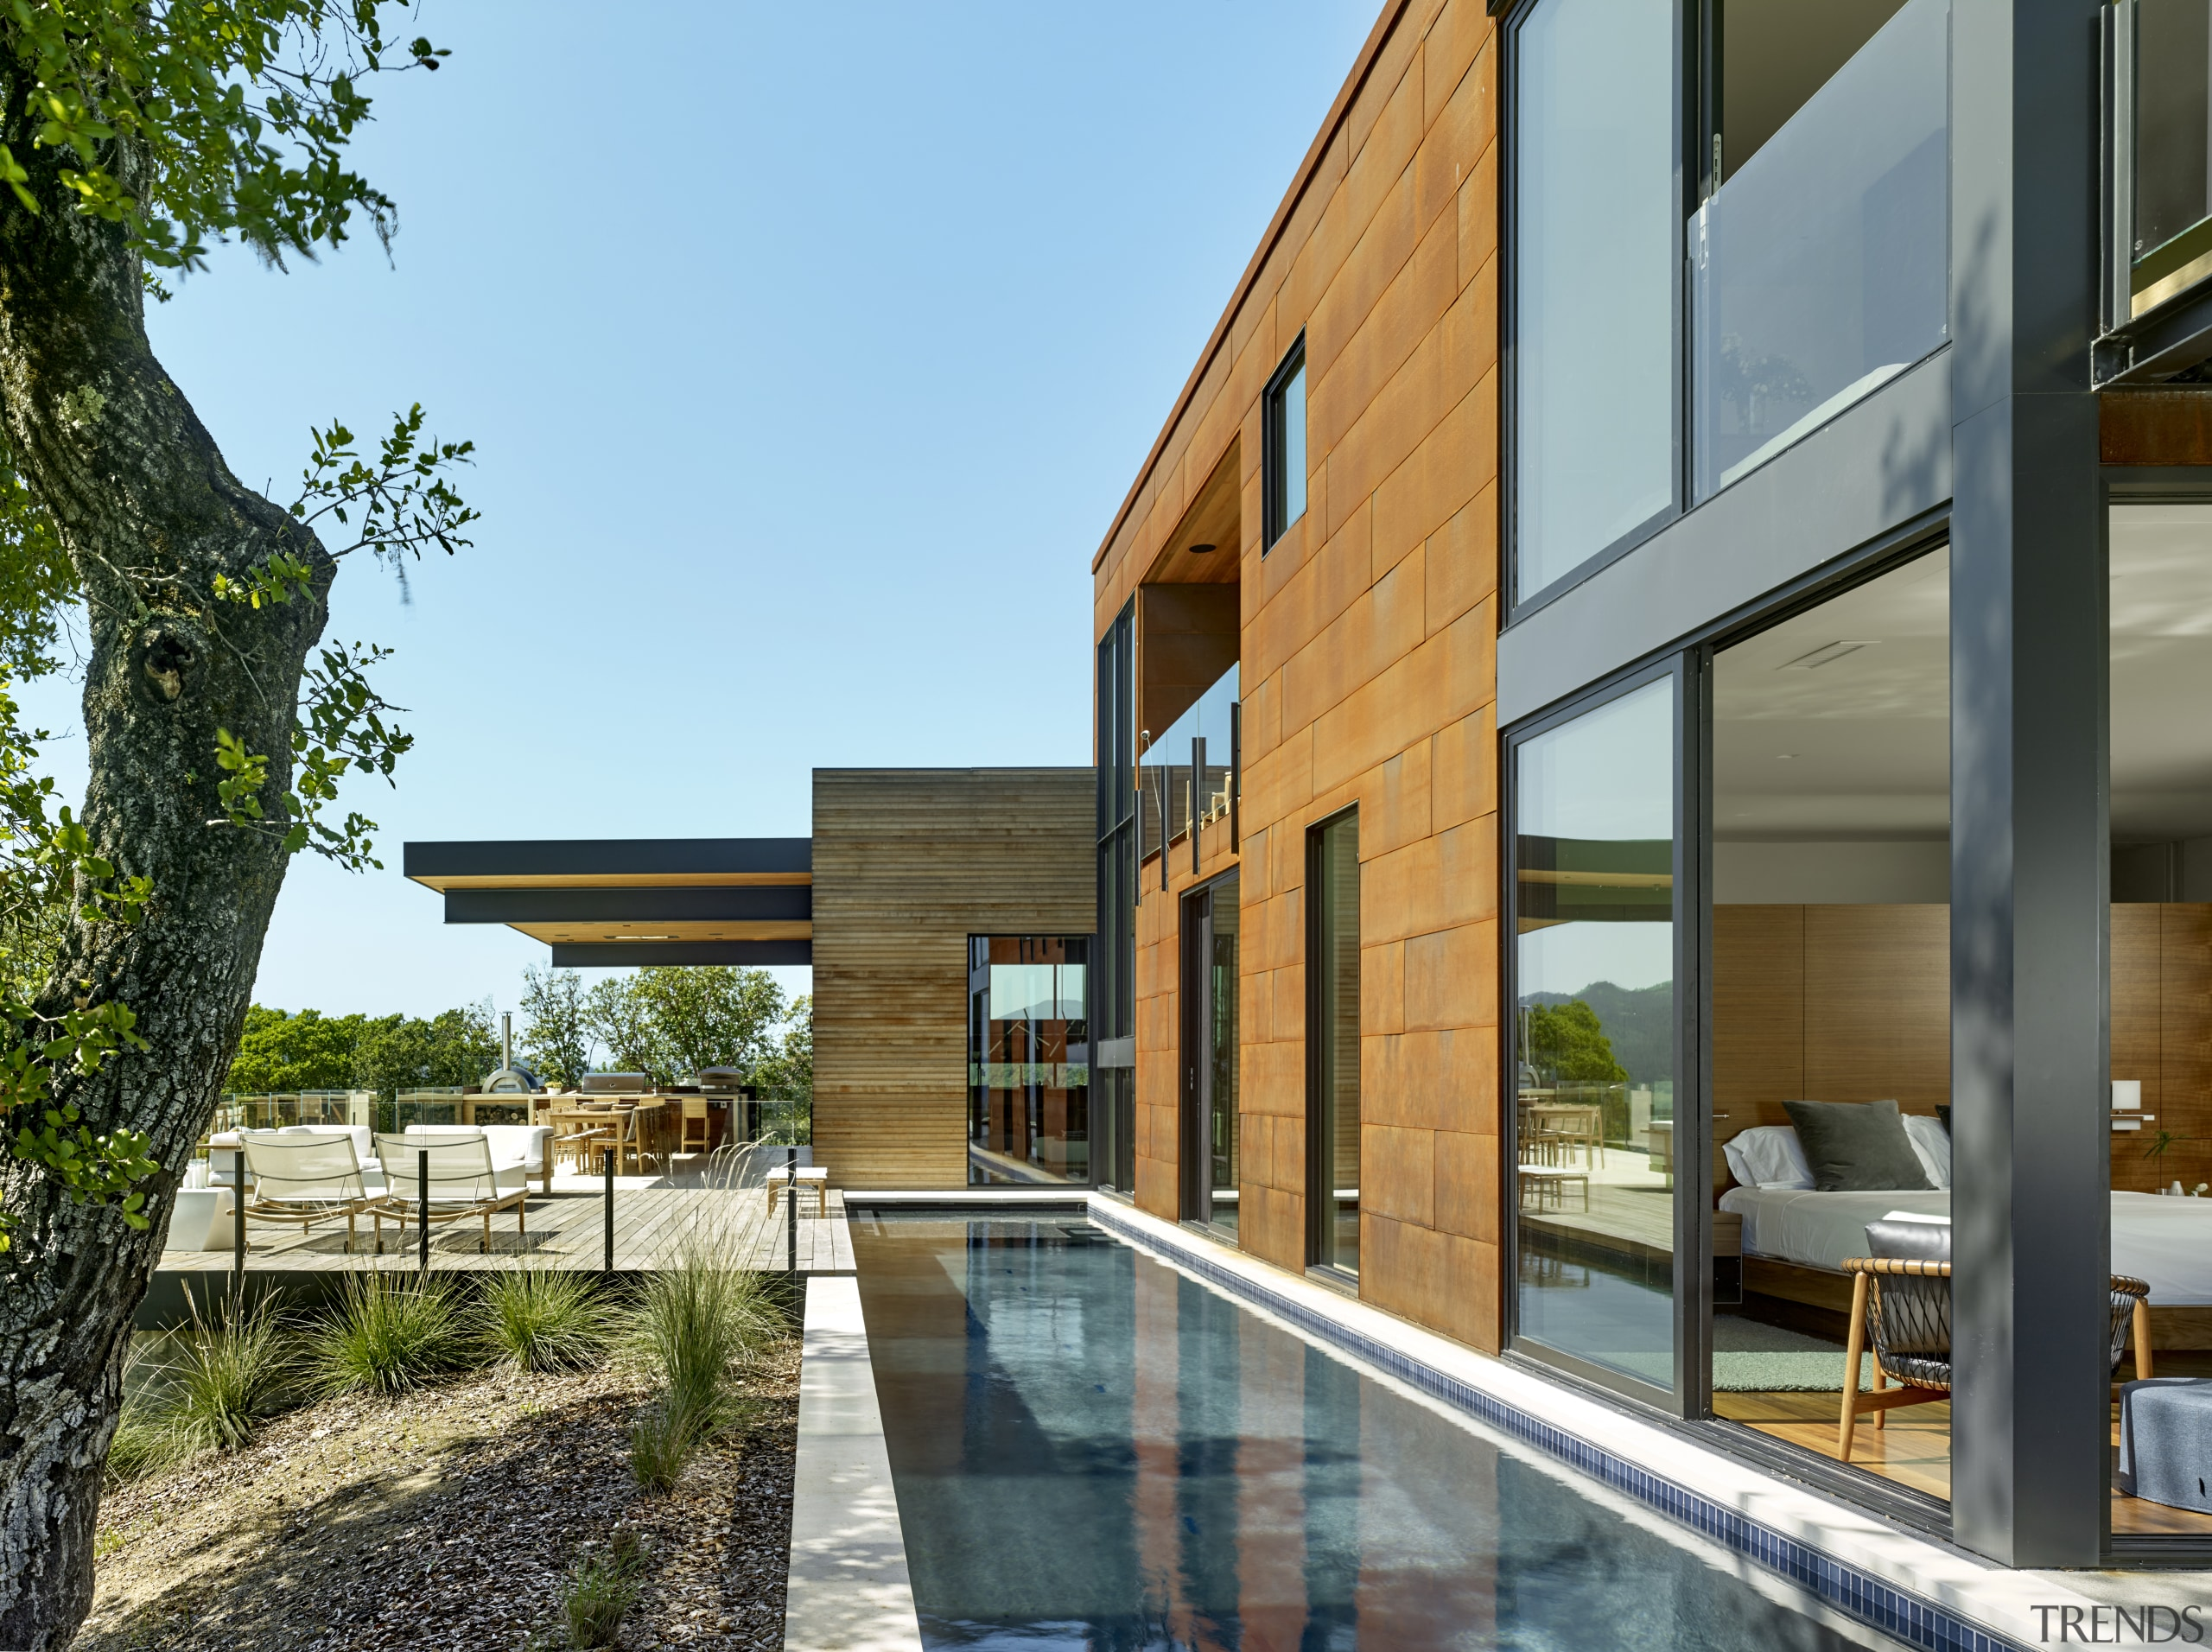 Having a lap pool sitting right up against architecture, building, design, exrterior facade, home, house, urban design, lap pool, timber cladding, de Vito Architecture + Construction